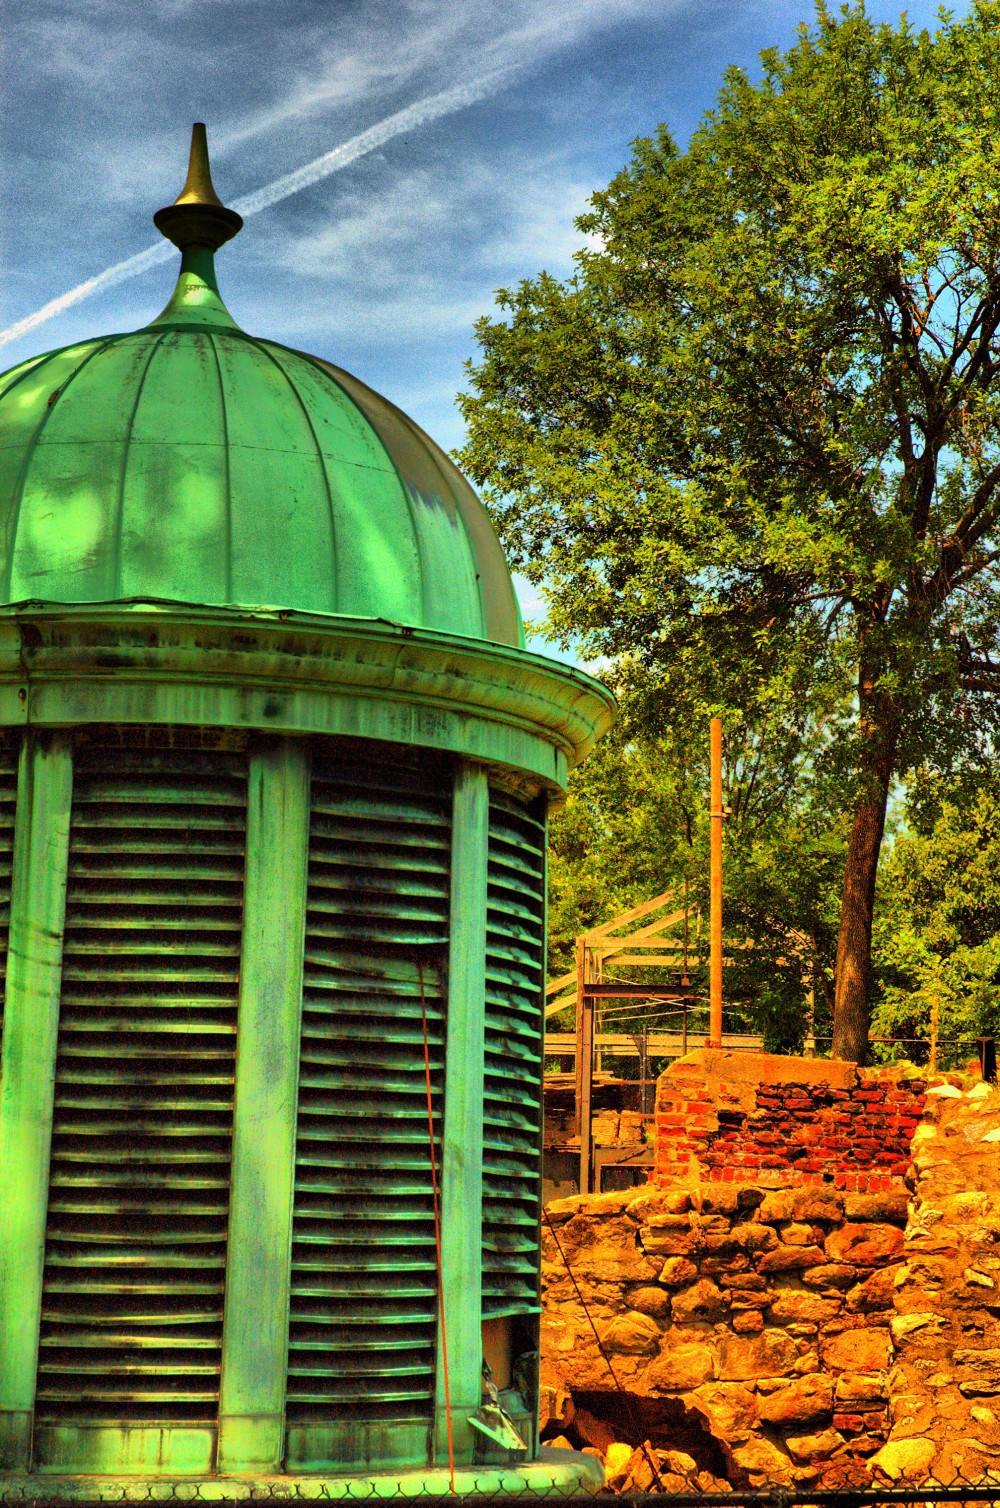 Tredegar Iron Works - Cupolas from the Virginia State Penitentiary